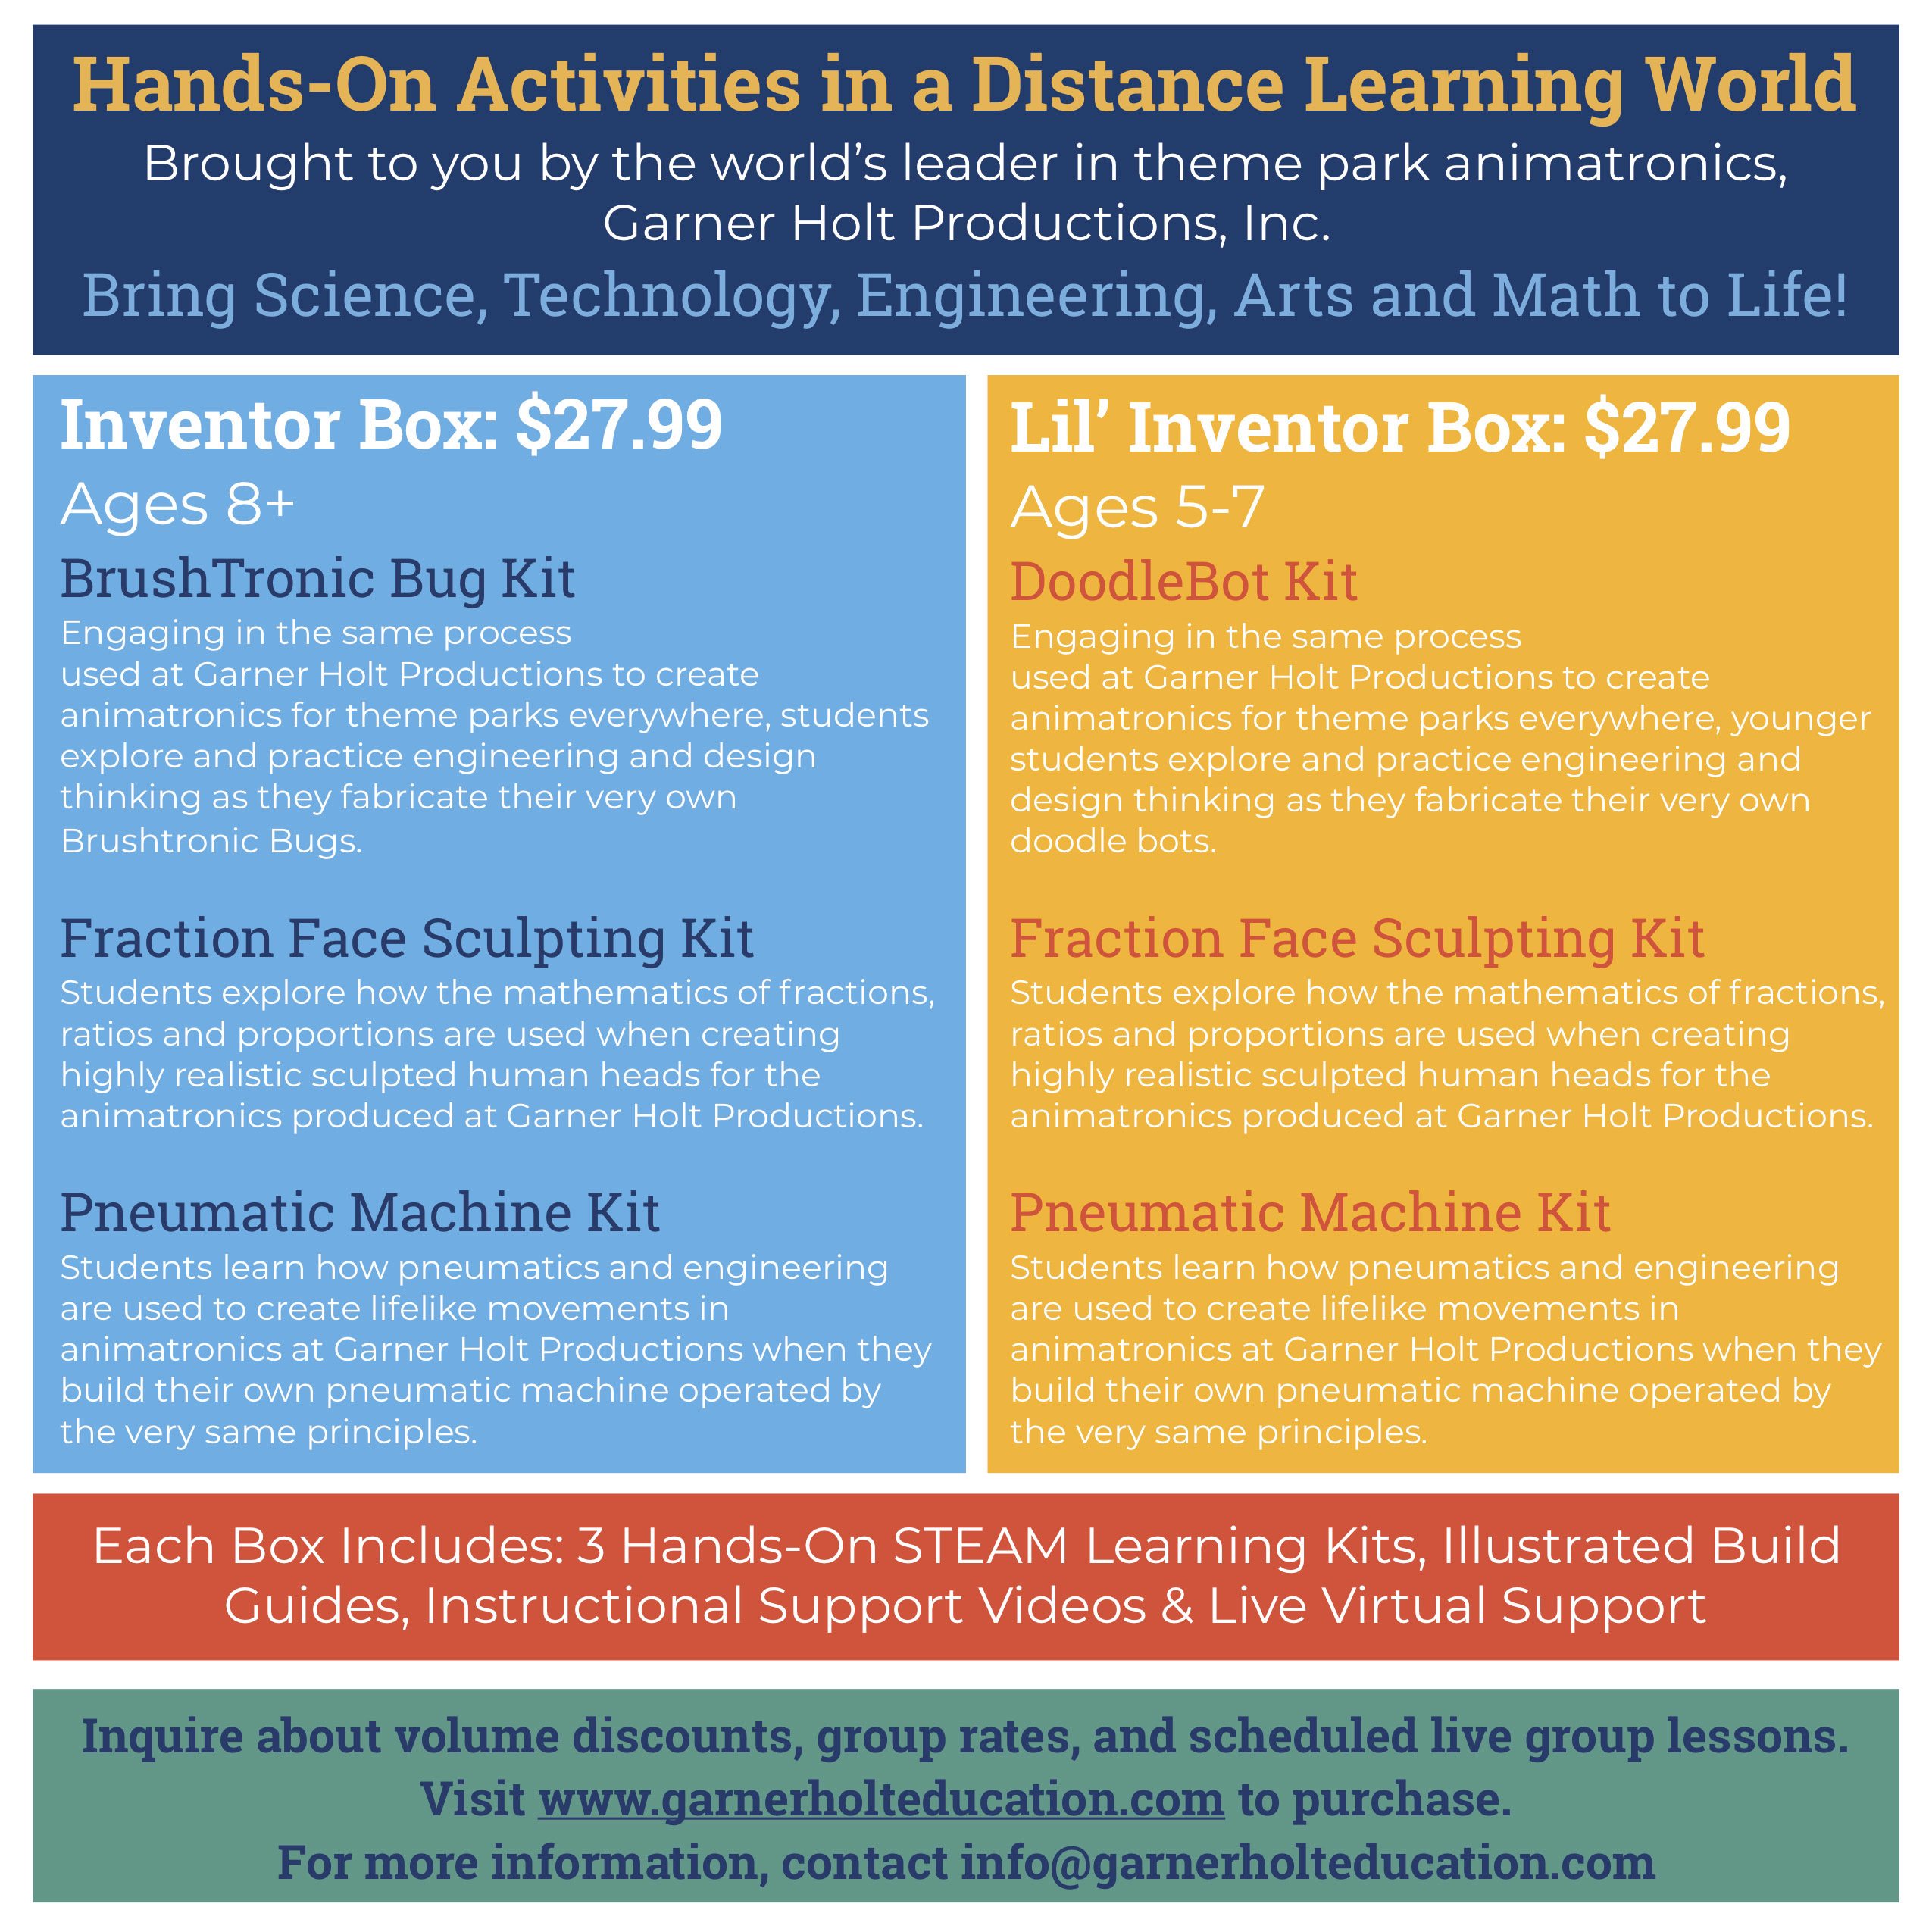 hands-On Activities in a Distance Learning World AD